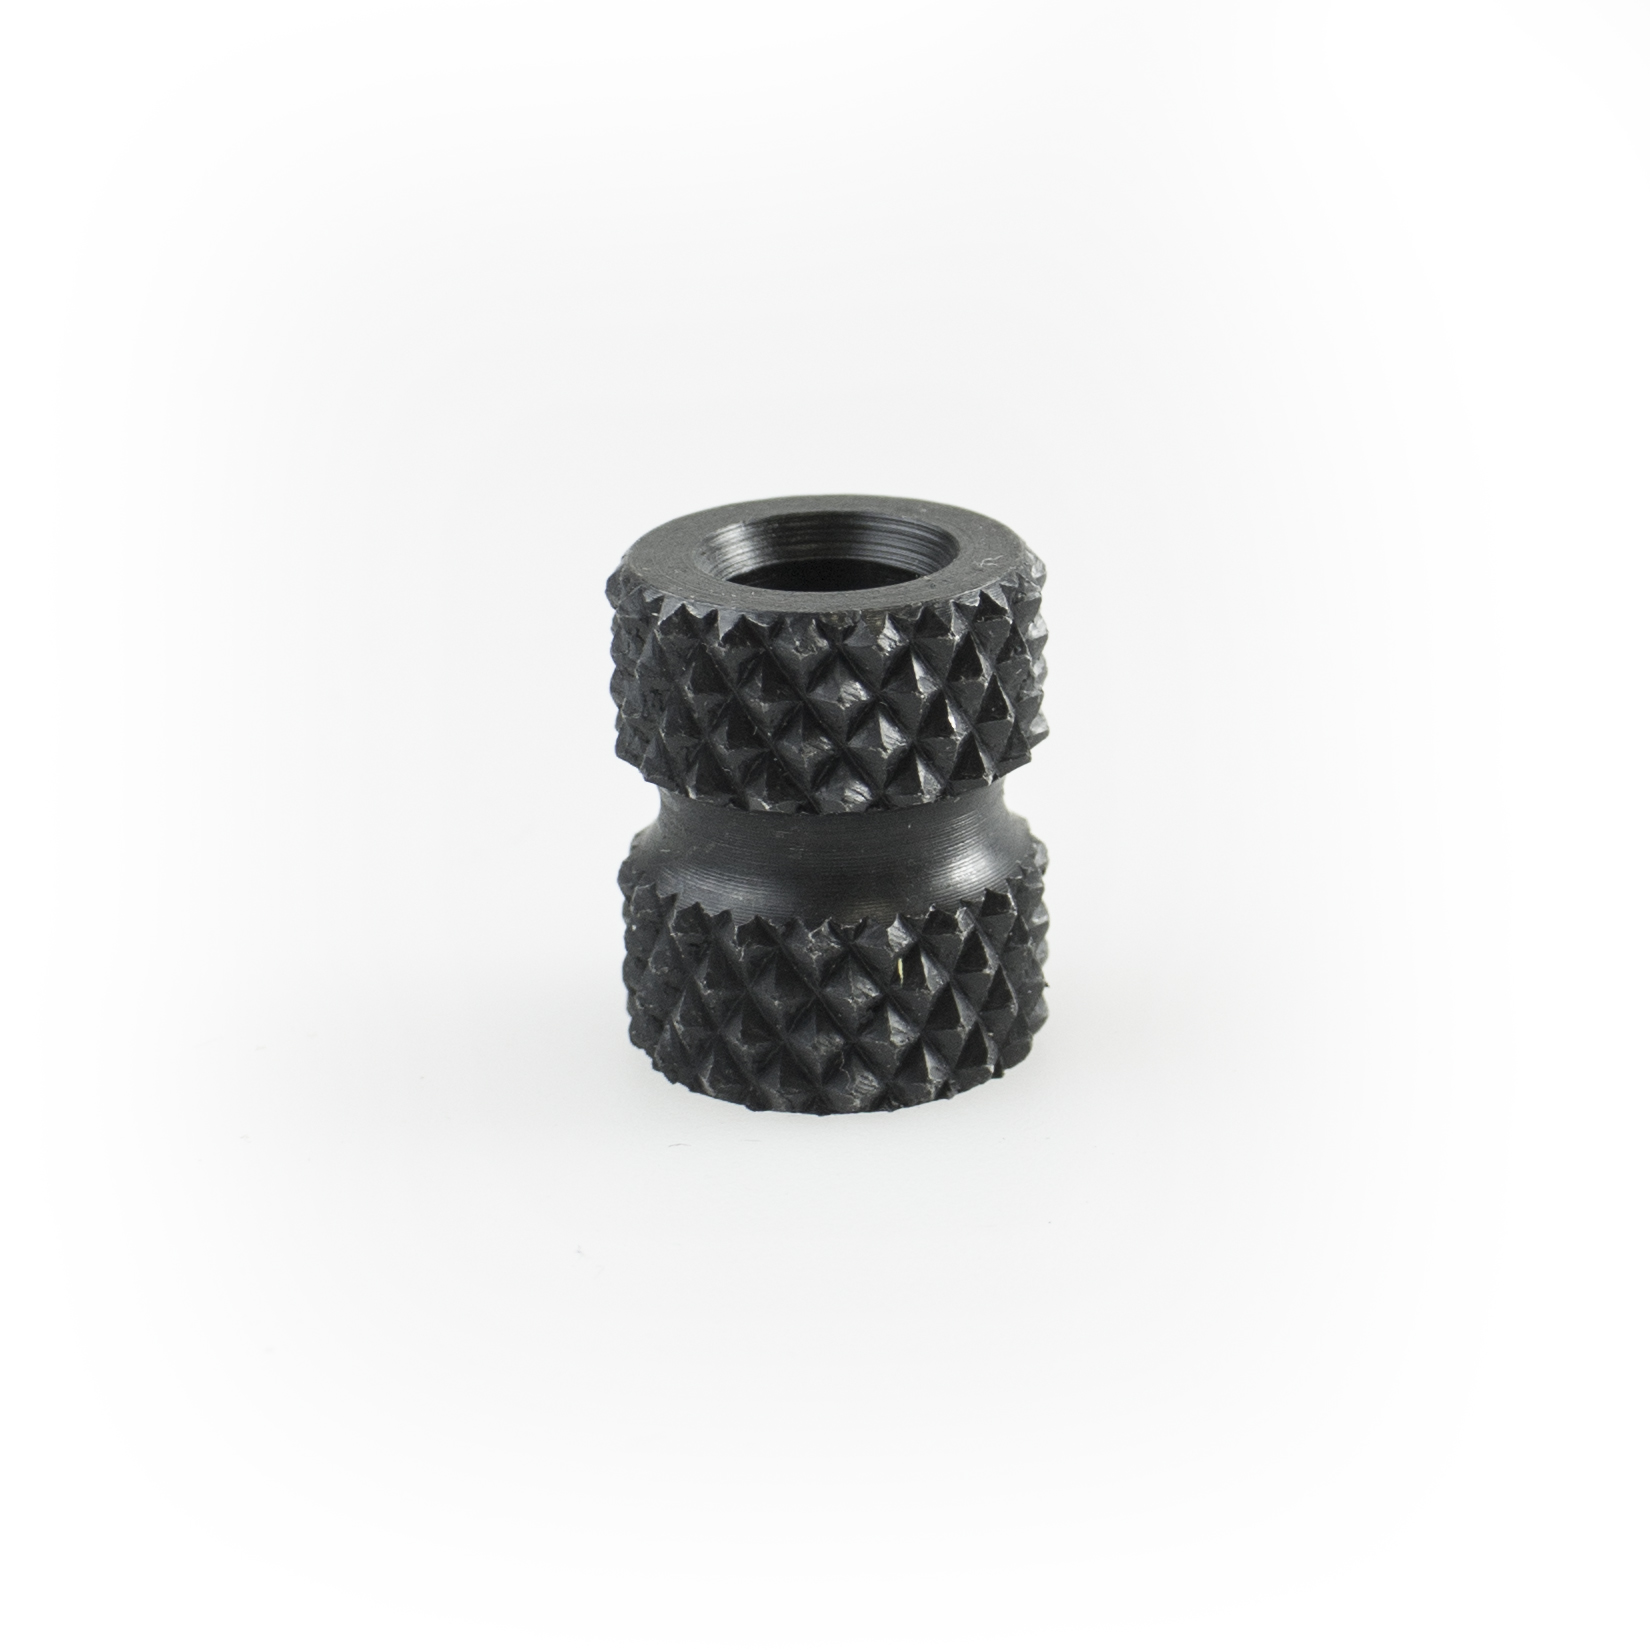 Knurled Mold Clamps Boneham Usa The Home Of Drill Bushings